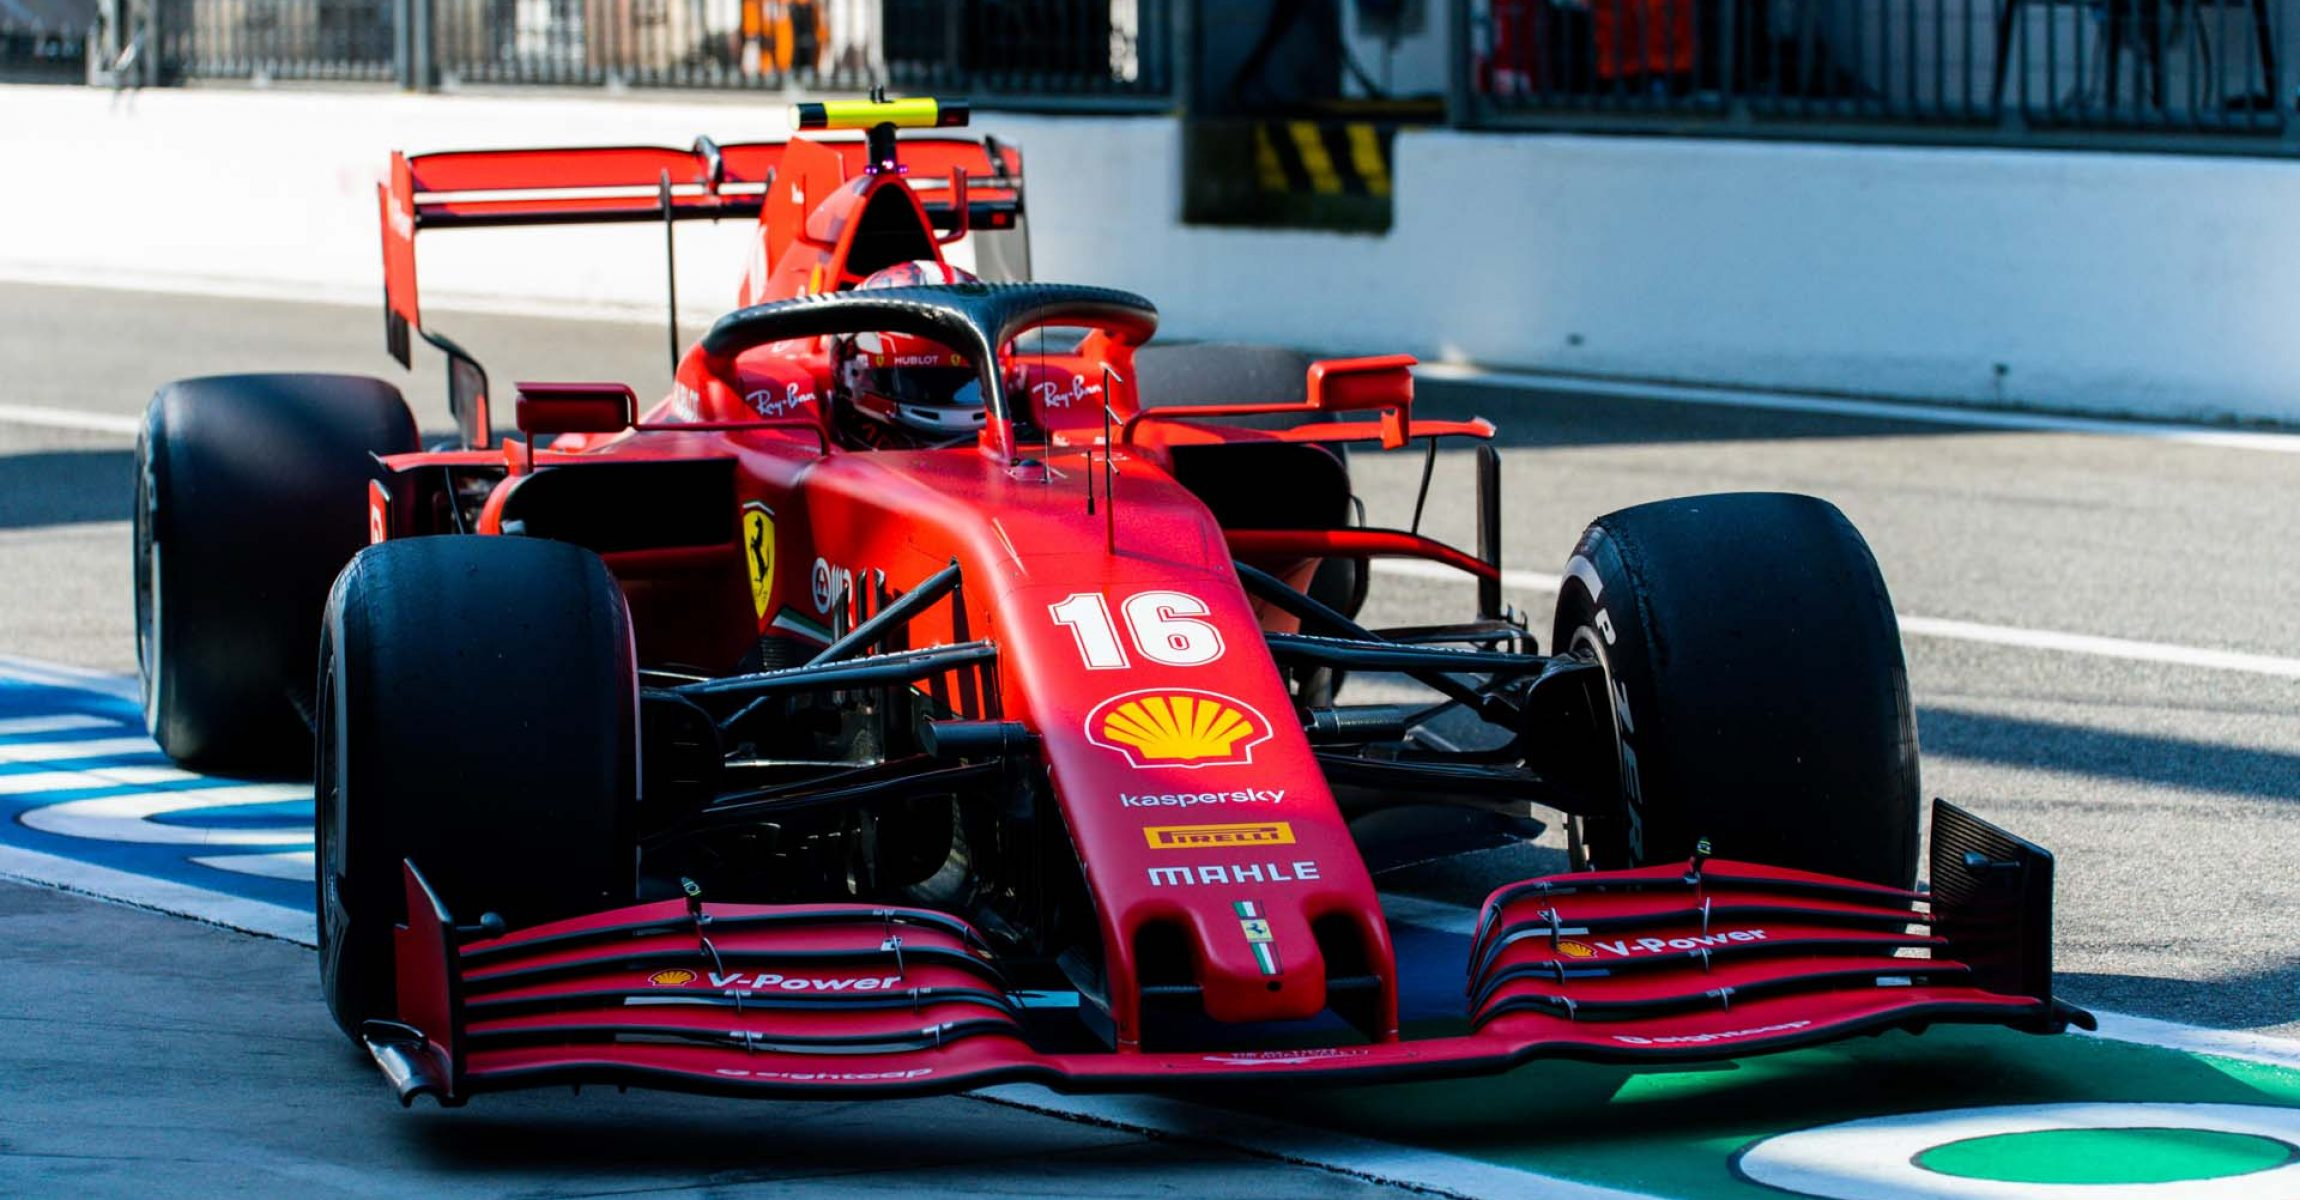 GP ITALIA F1/2020 -  VENERDÌ 04/09/2020       credit: @Scuderia Ferrari Press Office Charles Leclerc